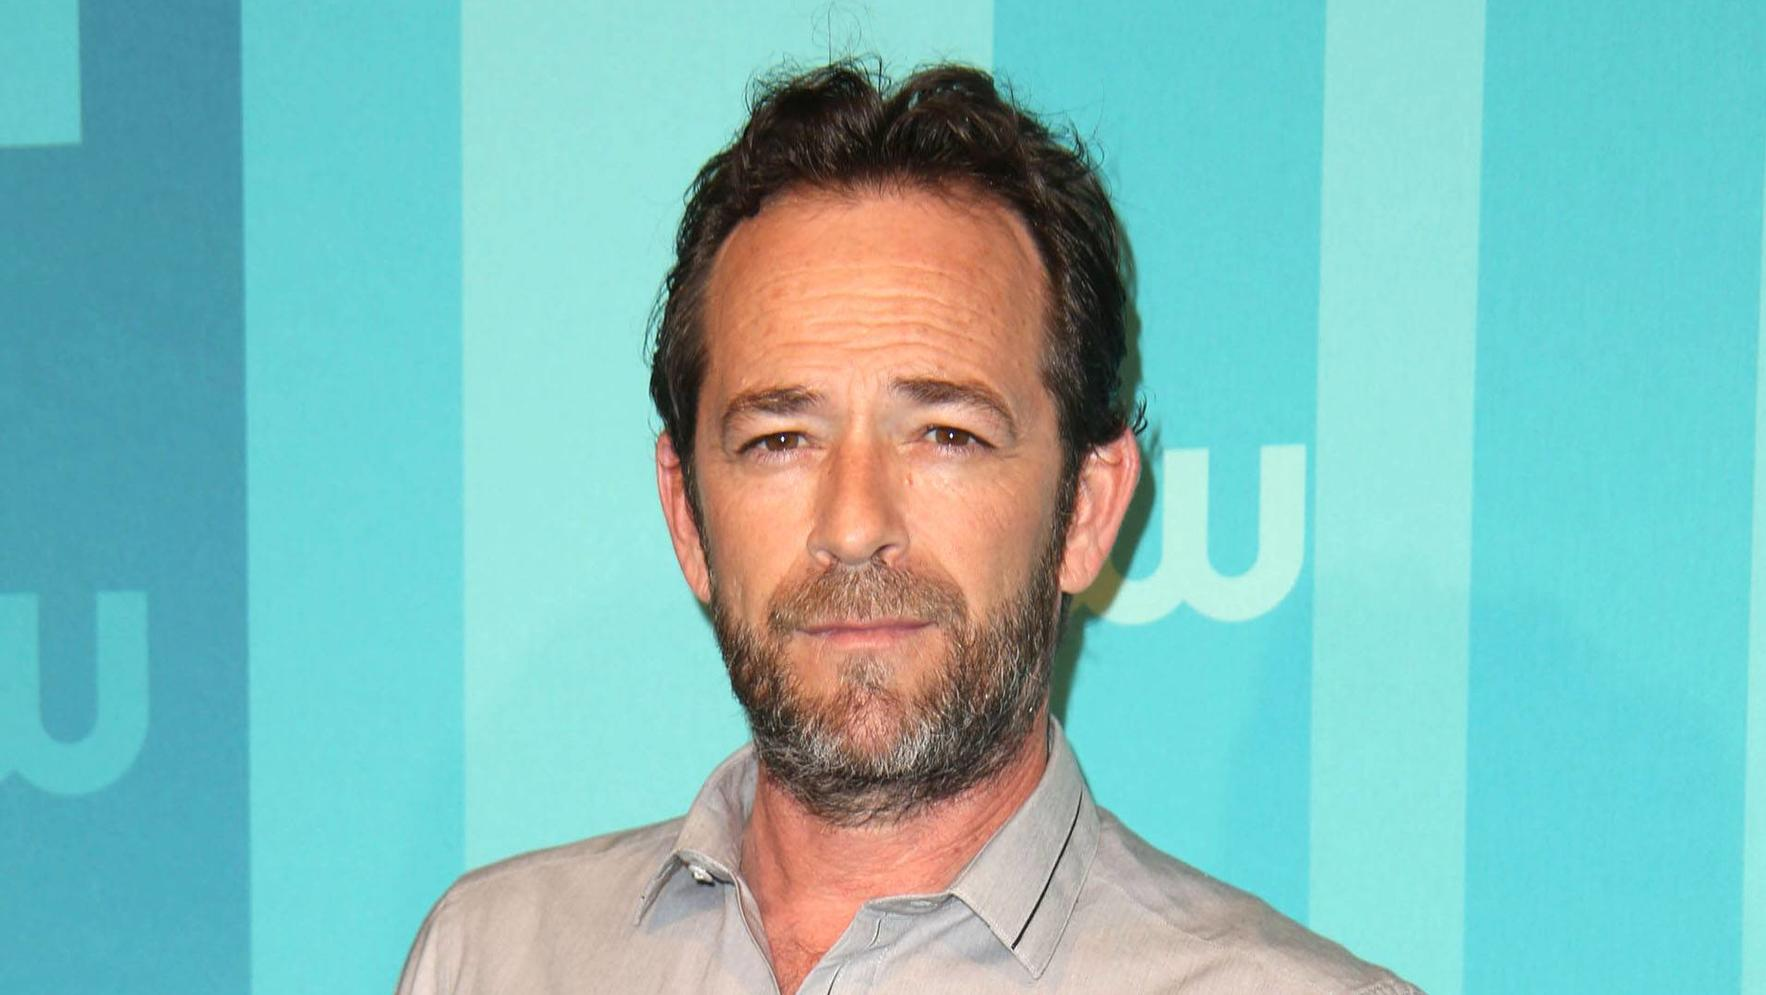 May 17, 2017 - New York, N.Y, USA - LUKE PERRY attends the CW Upfront Red Carpet,.The London Hotel, NYC.May 18, 2017.Photos by , Globe Photos Inc. New York USA PUBLICATIONxINxGERxSUIxAUTxONLY - ZUMAms4_ 20170517_zaa_ms4_125 Copyright: xSoniaxMoskowit